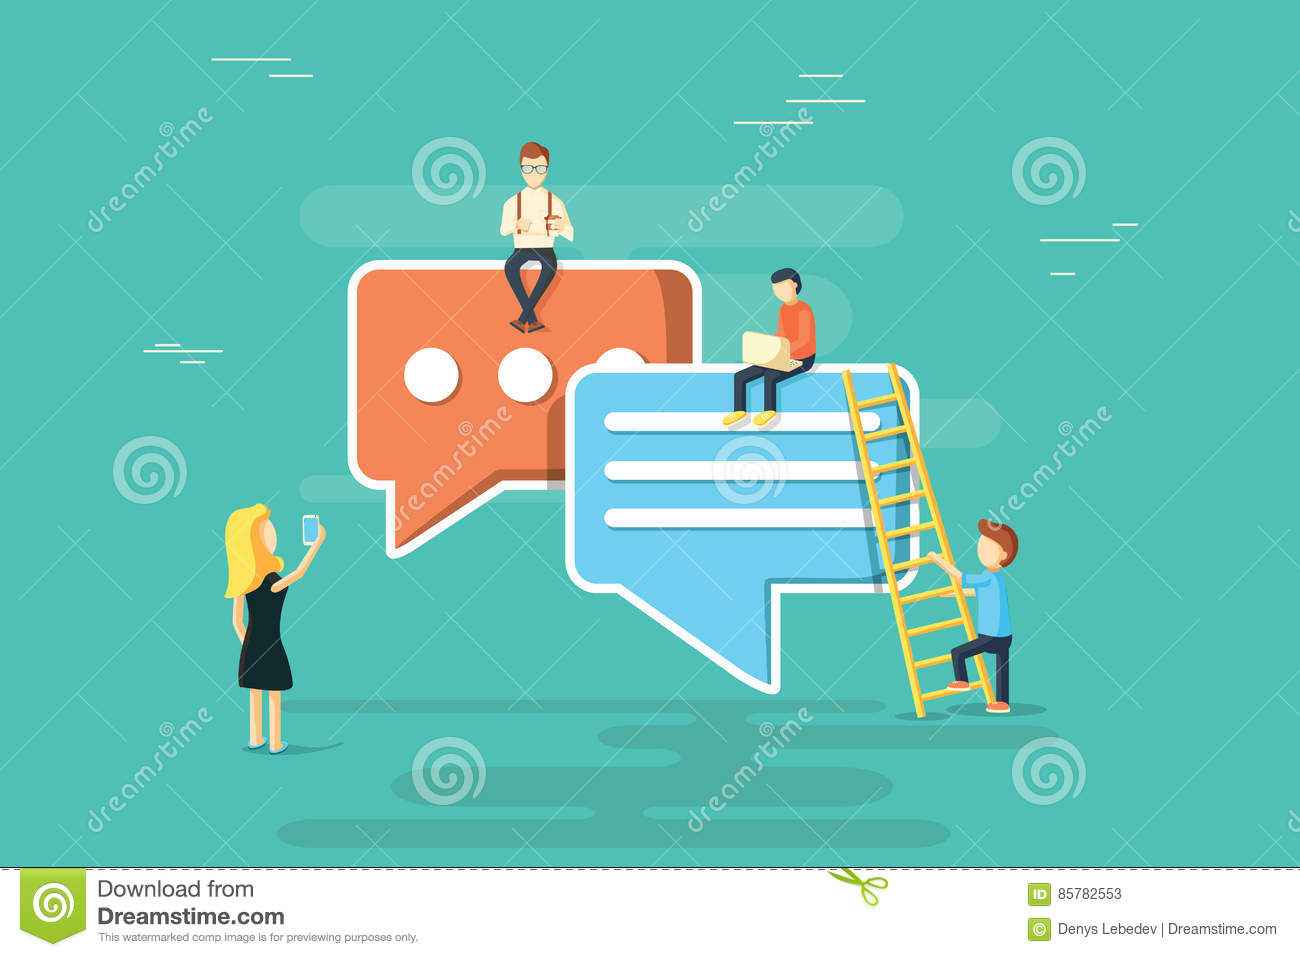 Speech bubbles for comment anf reply concept flat illustration of young people using mobile smartphone